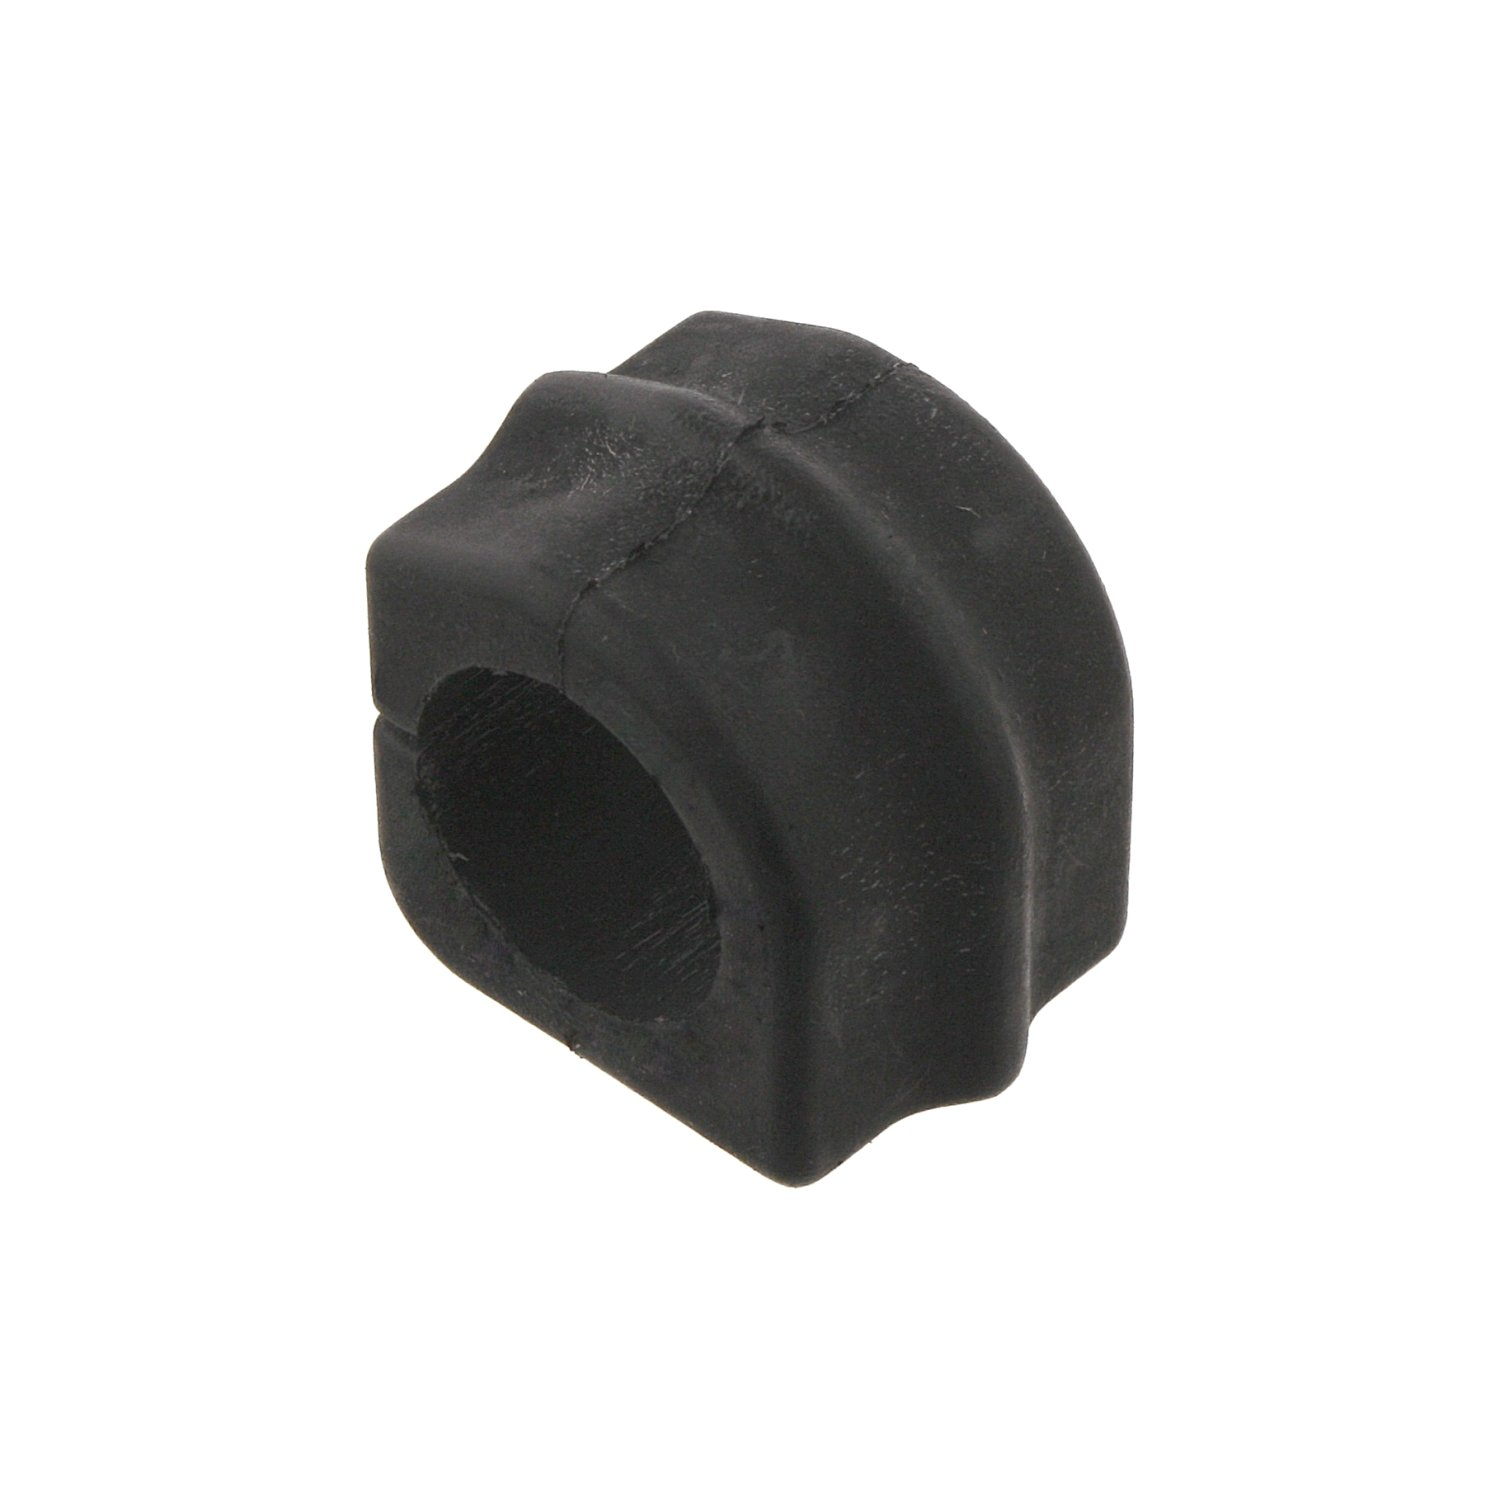 febi bilstein 31354 anti roll bar bush (front axle both sides) - Pack of 1